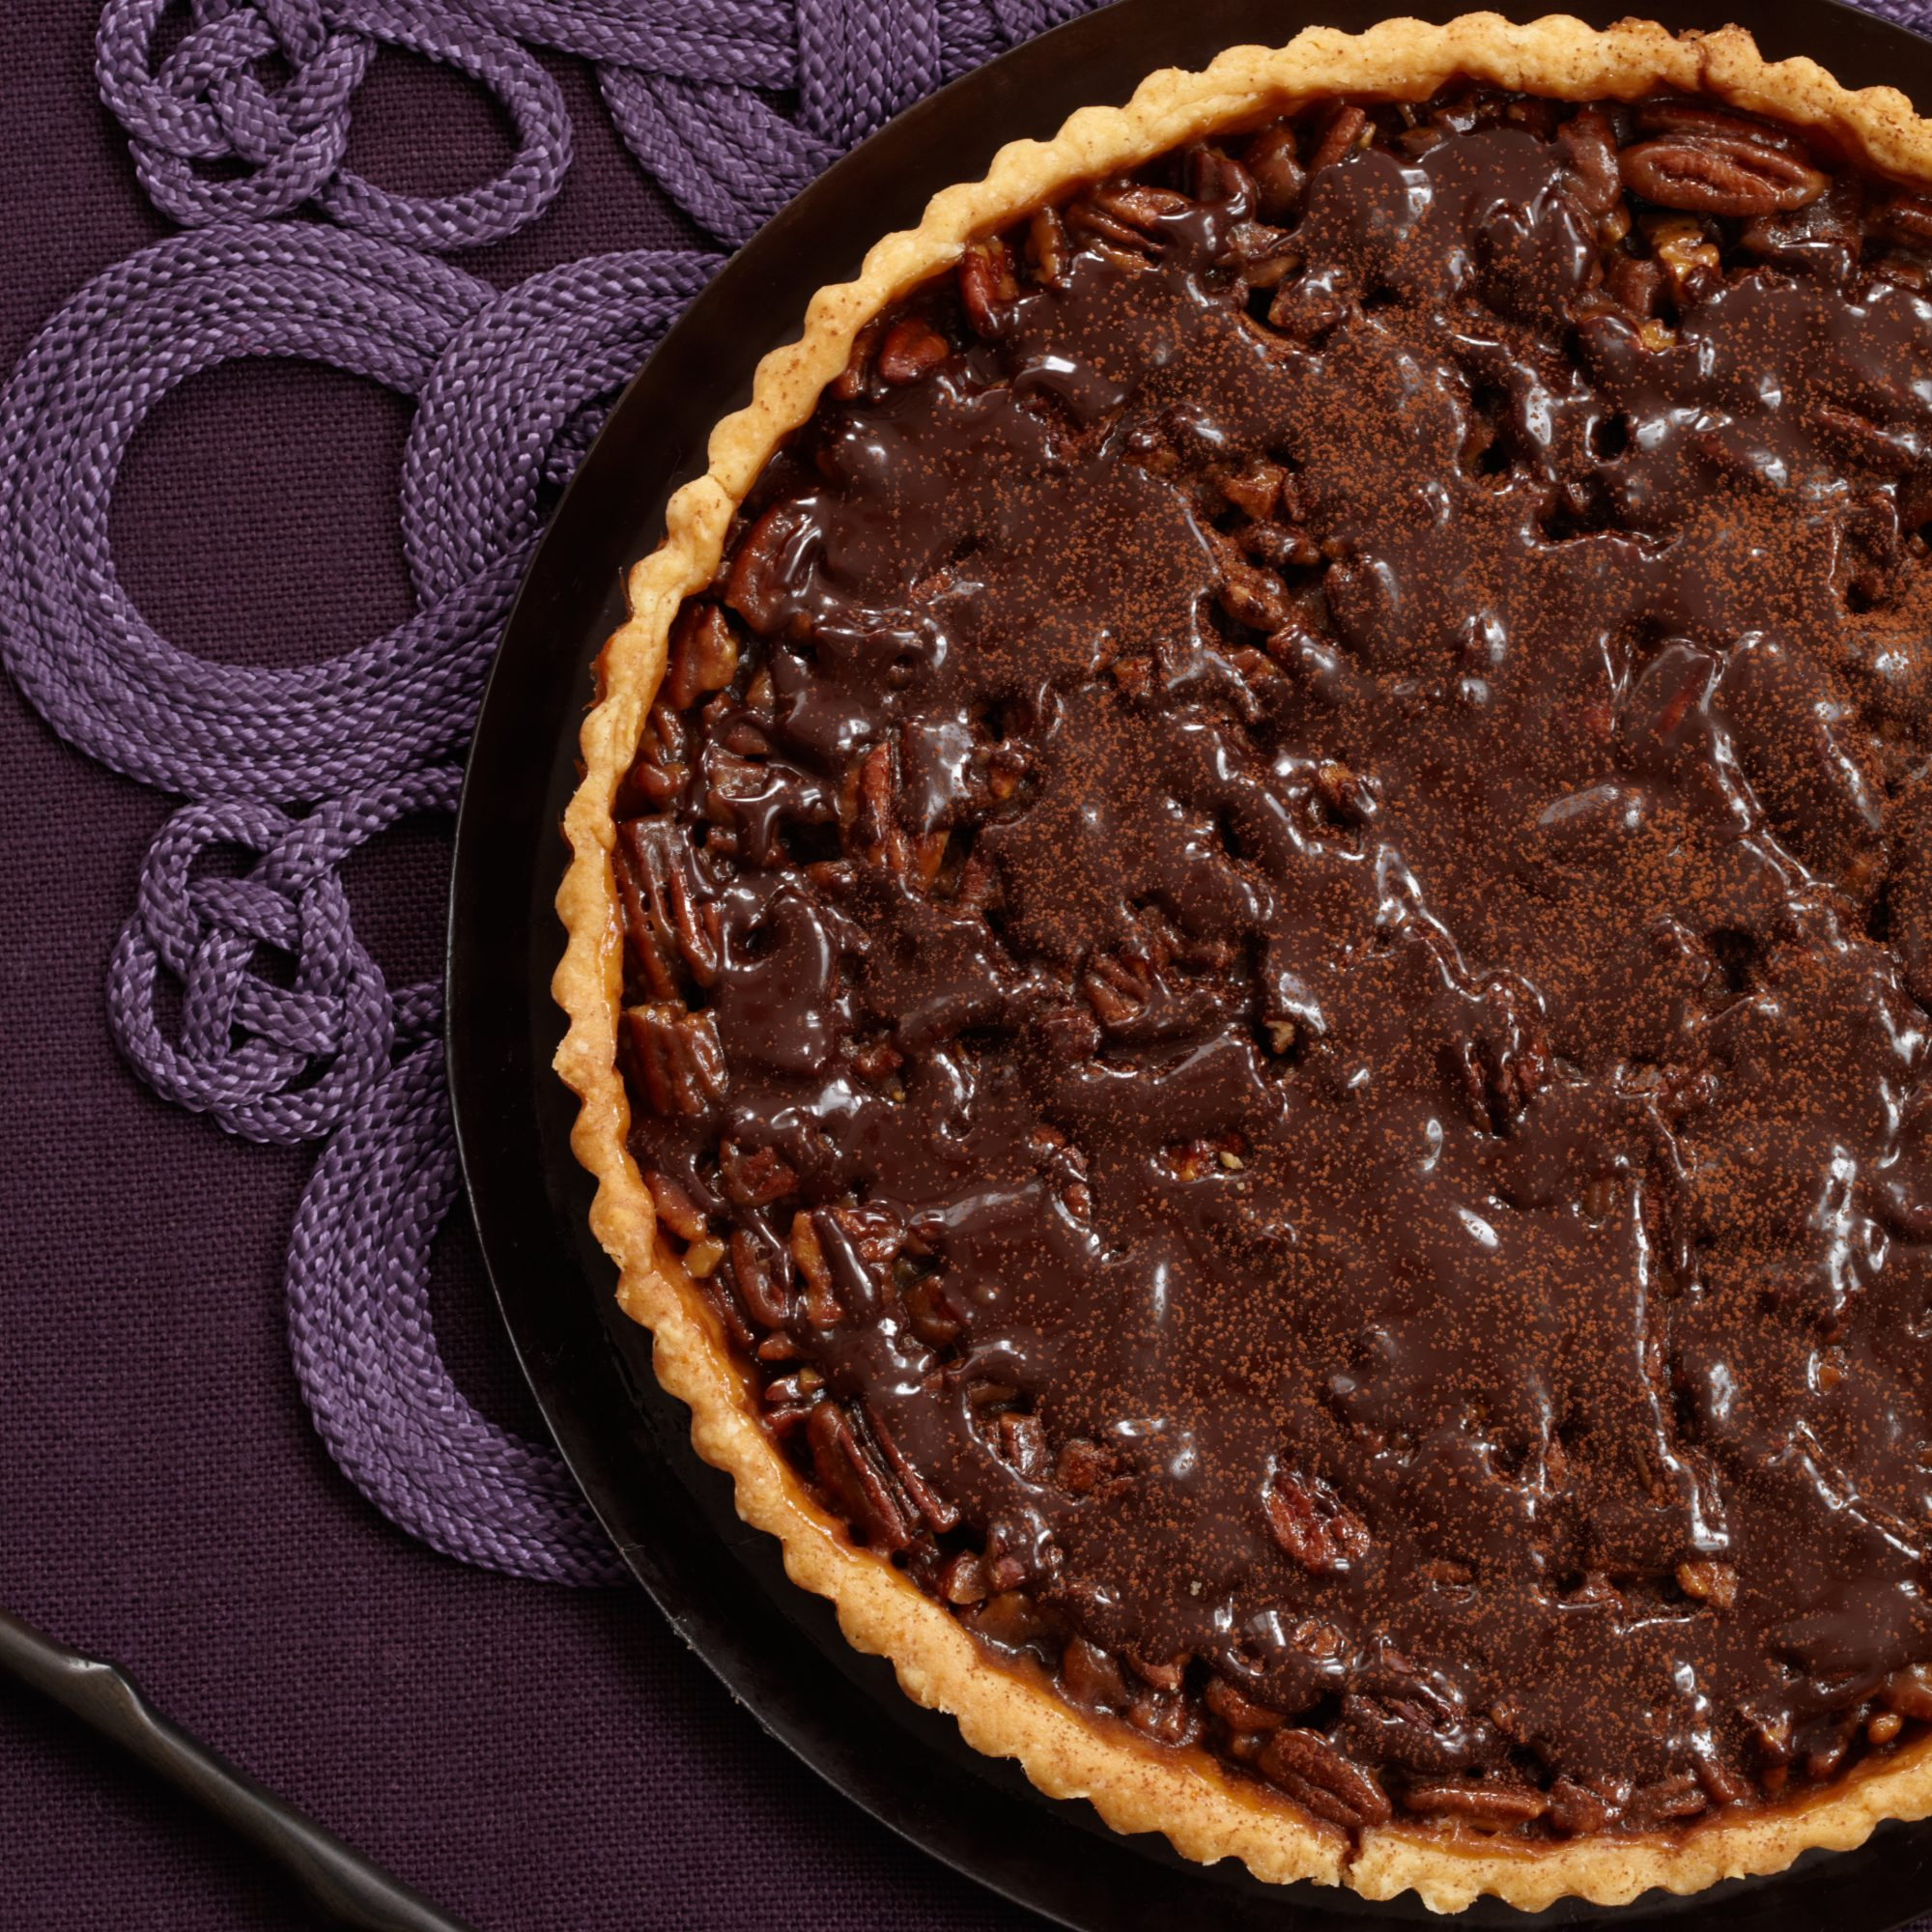 HD-201009-r-pecan-chocolate-tart.jpg